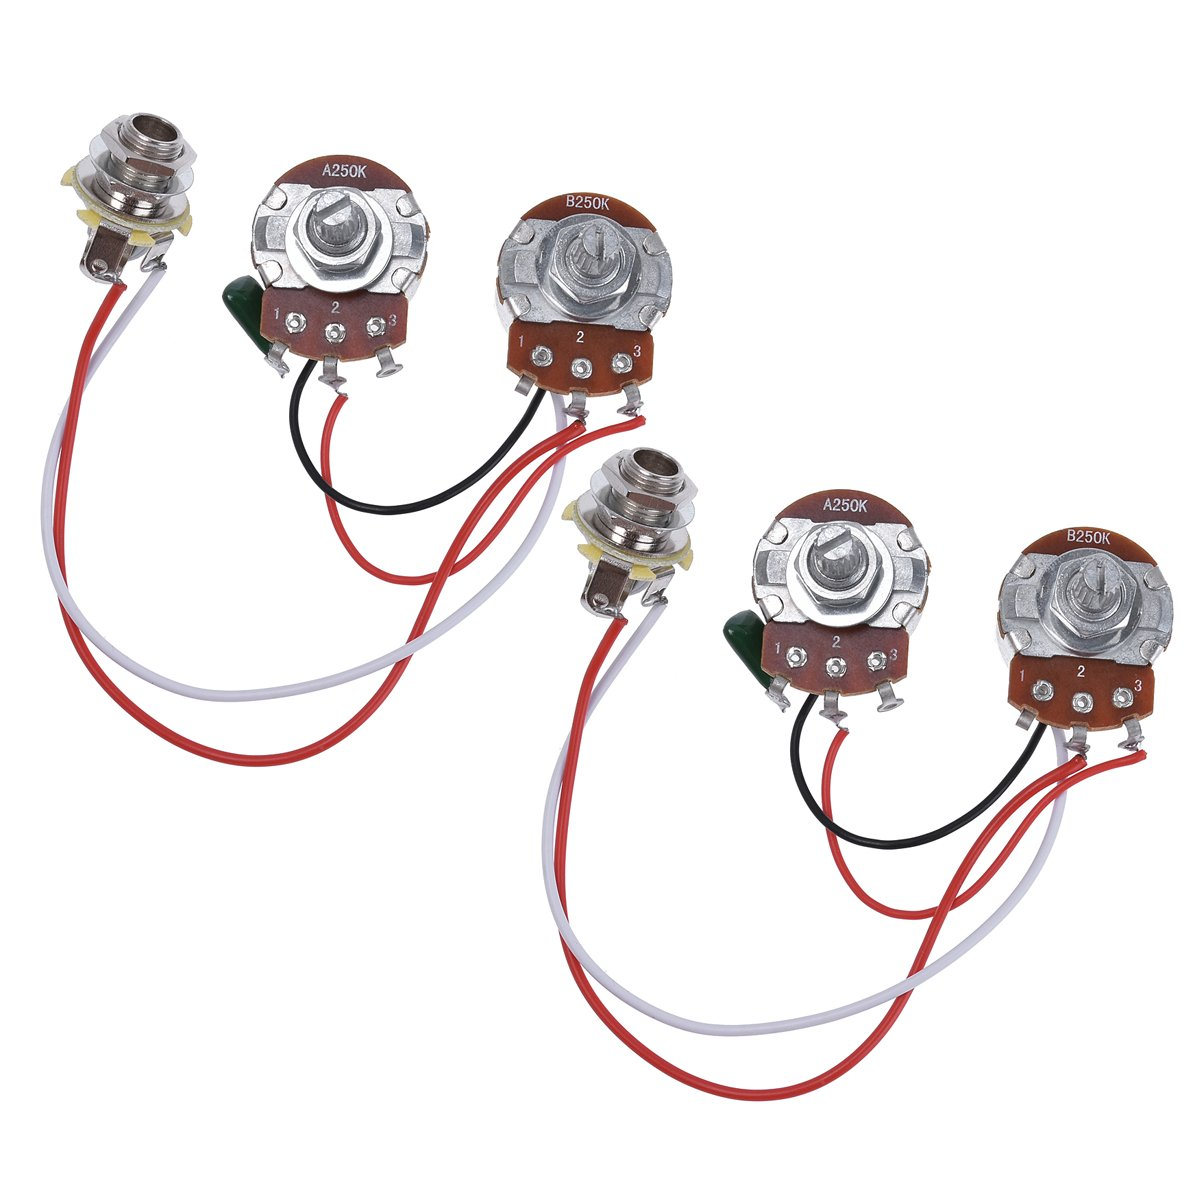 Bass Wiring Harness Prewired Kit For Precision Dragonfire Two Pickup 500k Toggle Chrome Great With Guitar 250k Pots 1 Volume Tone Jack Pack Of 2 Musical Instruments